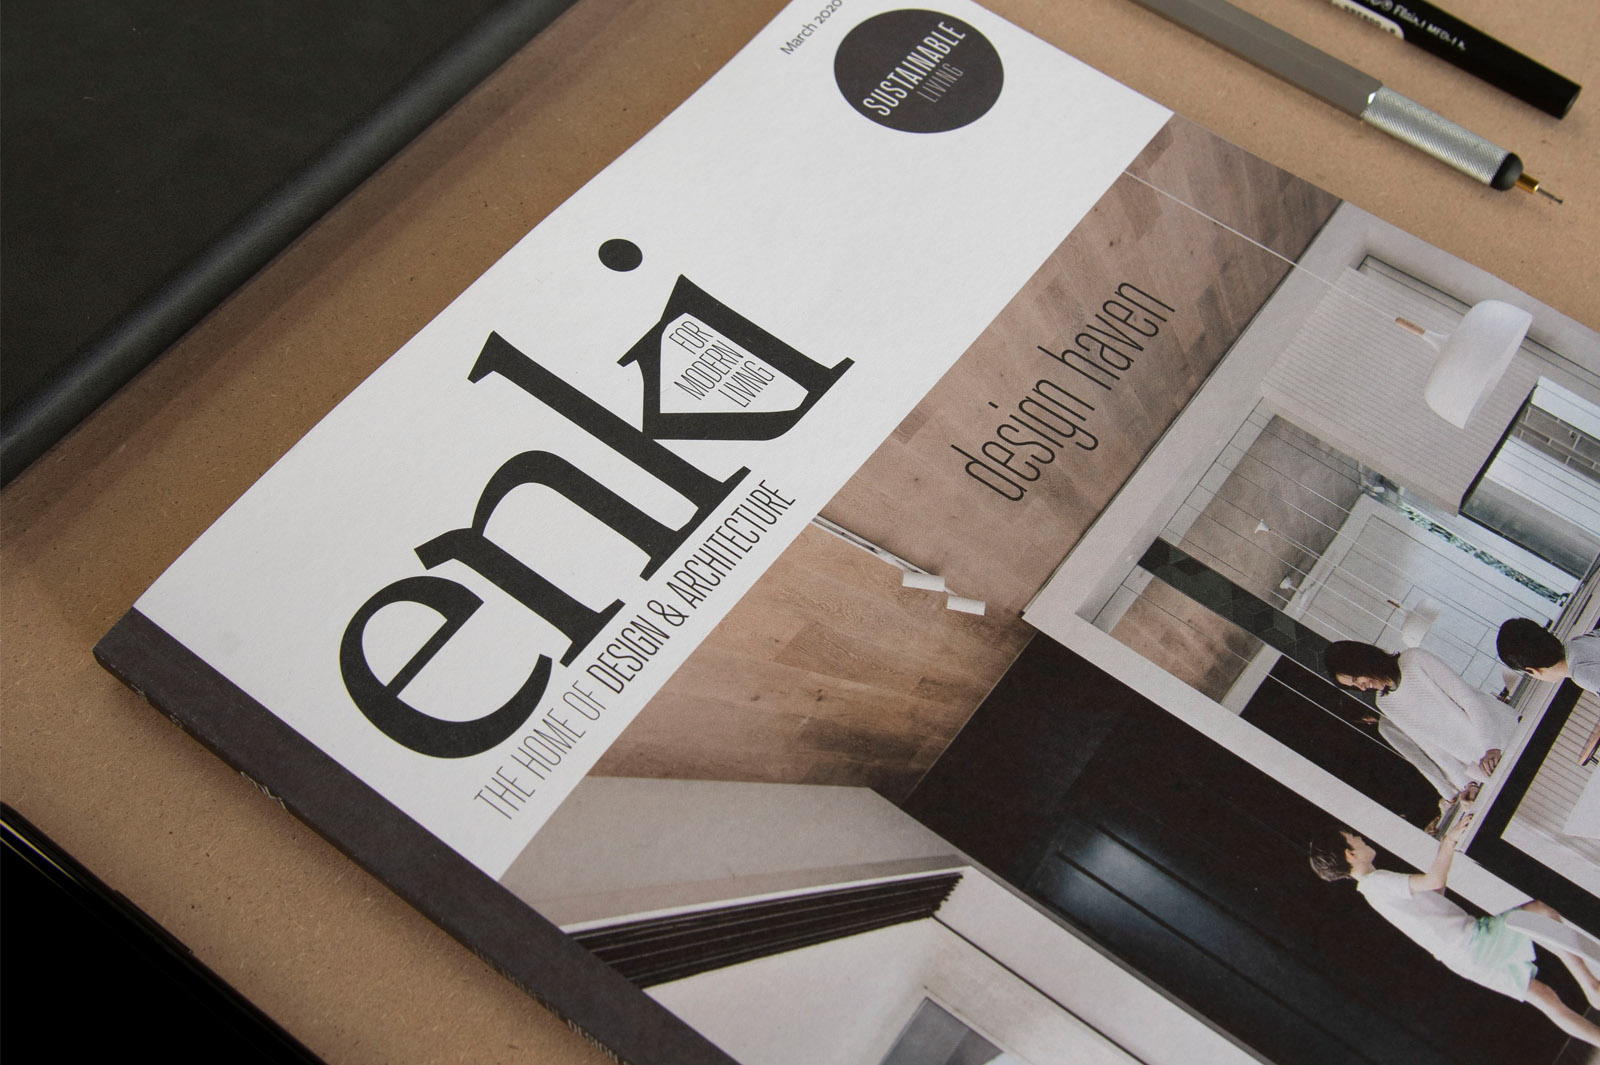 Dualchas 'Architects of the month' Enki Magazine